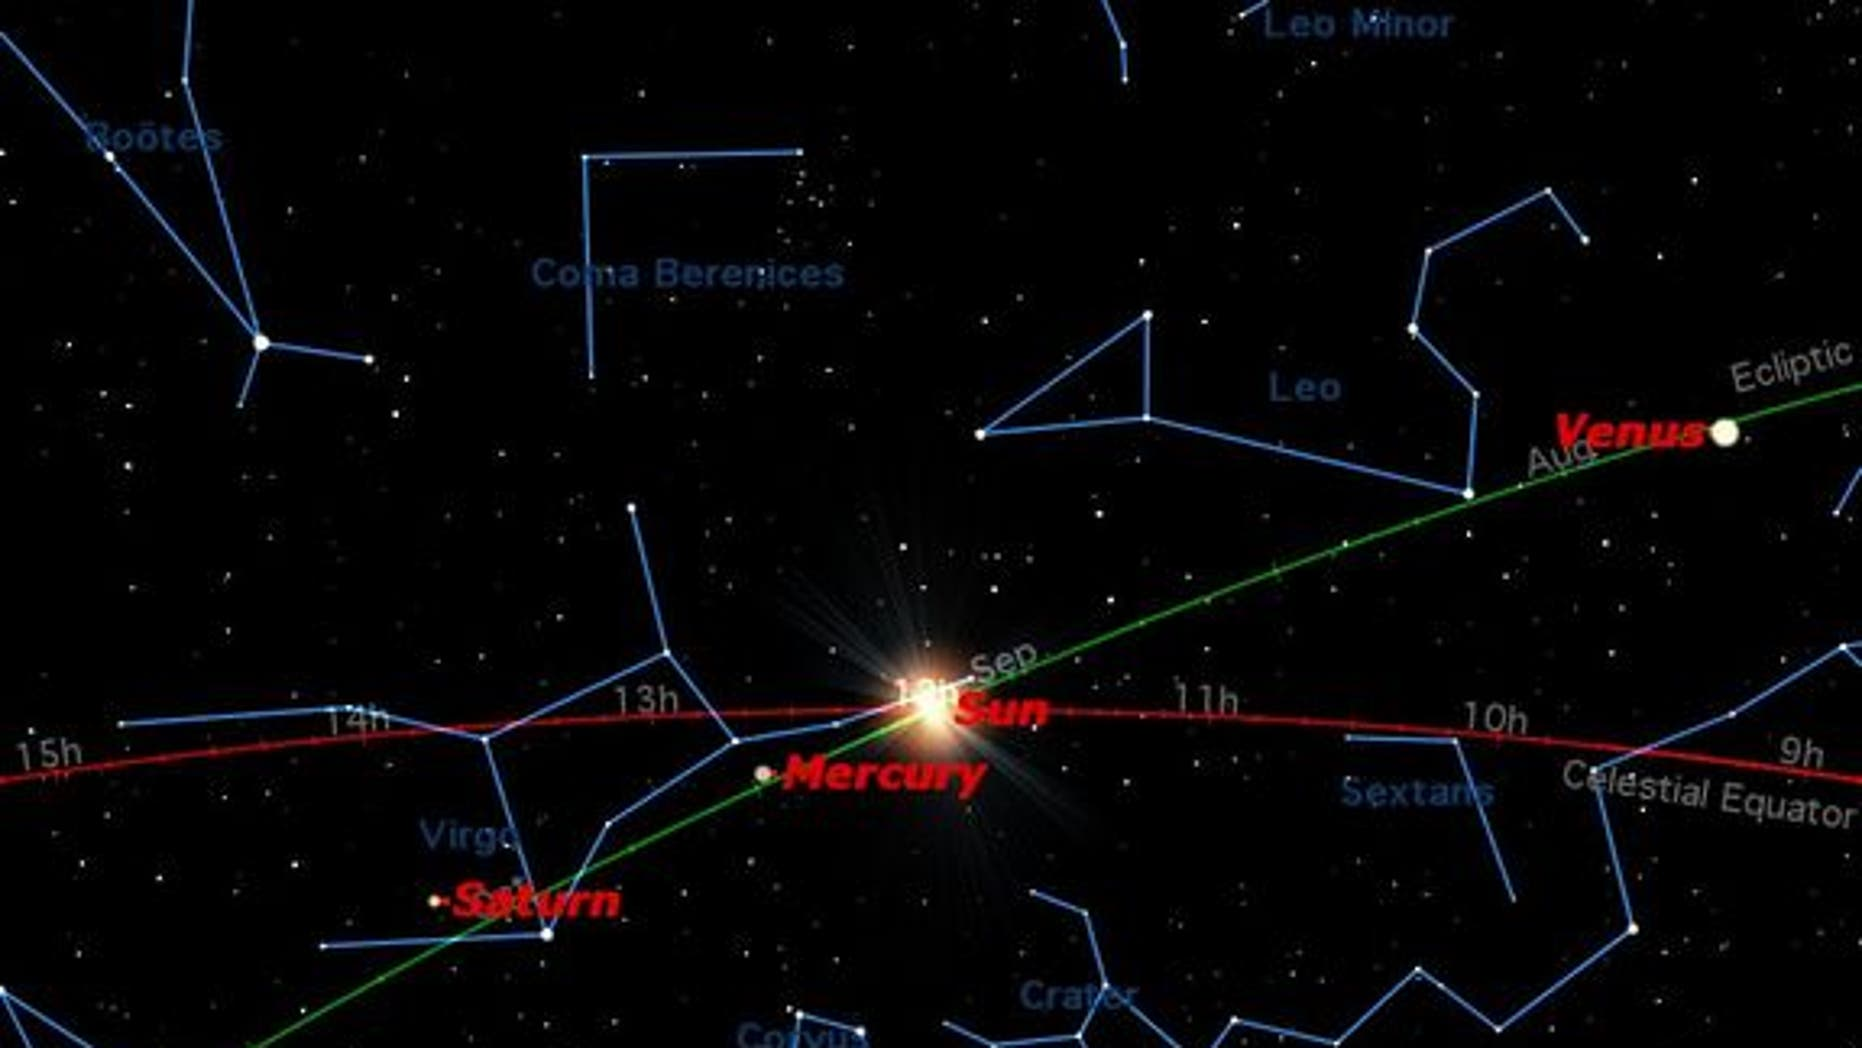 On Saturday, Sept. 22, the sun crosses the celestial equator heading south. This is the autumnal equinox in the northern hemisphere and the vernal equinox in the southern hemisphere.